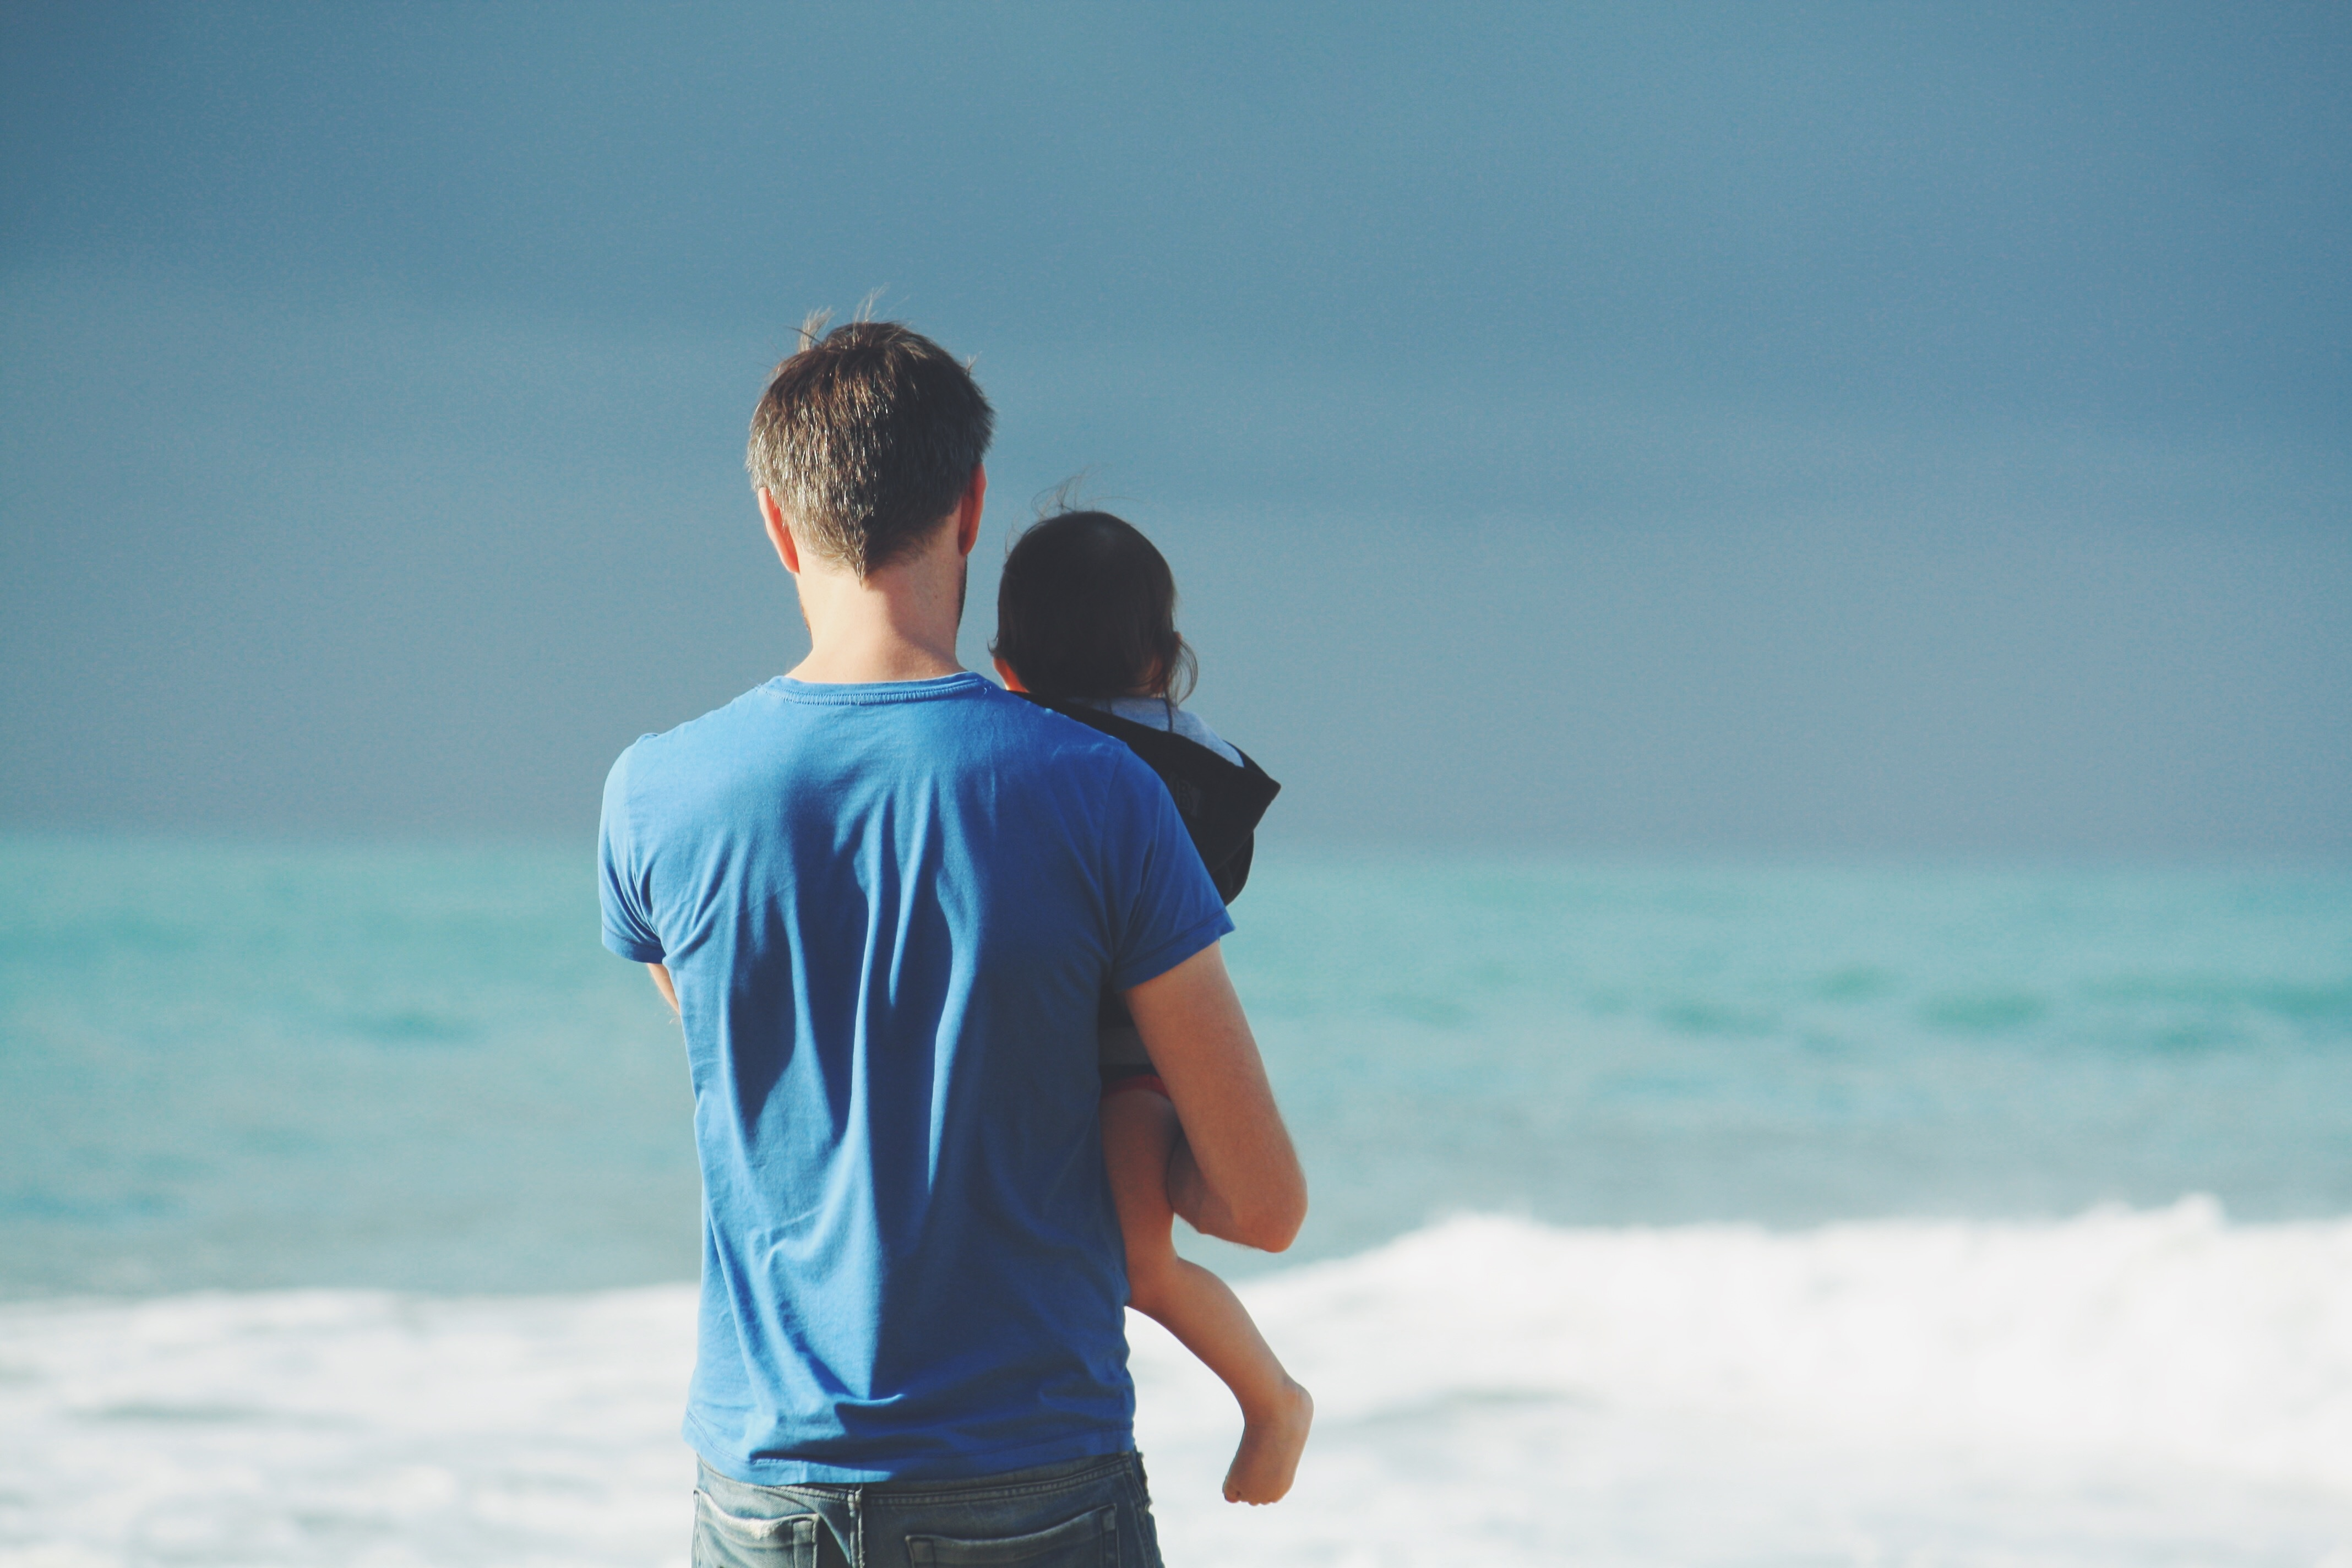 ~ Happy Father's Day! Create a cool Remix and send it to your dad. Courtesy of Unsplash (Public Domain)#FreeToEdit #FathersDay # sky #sea #man #child